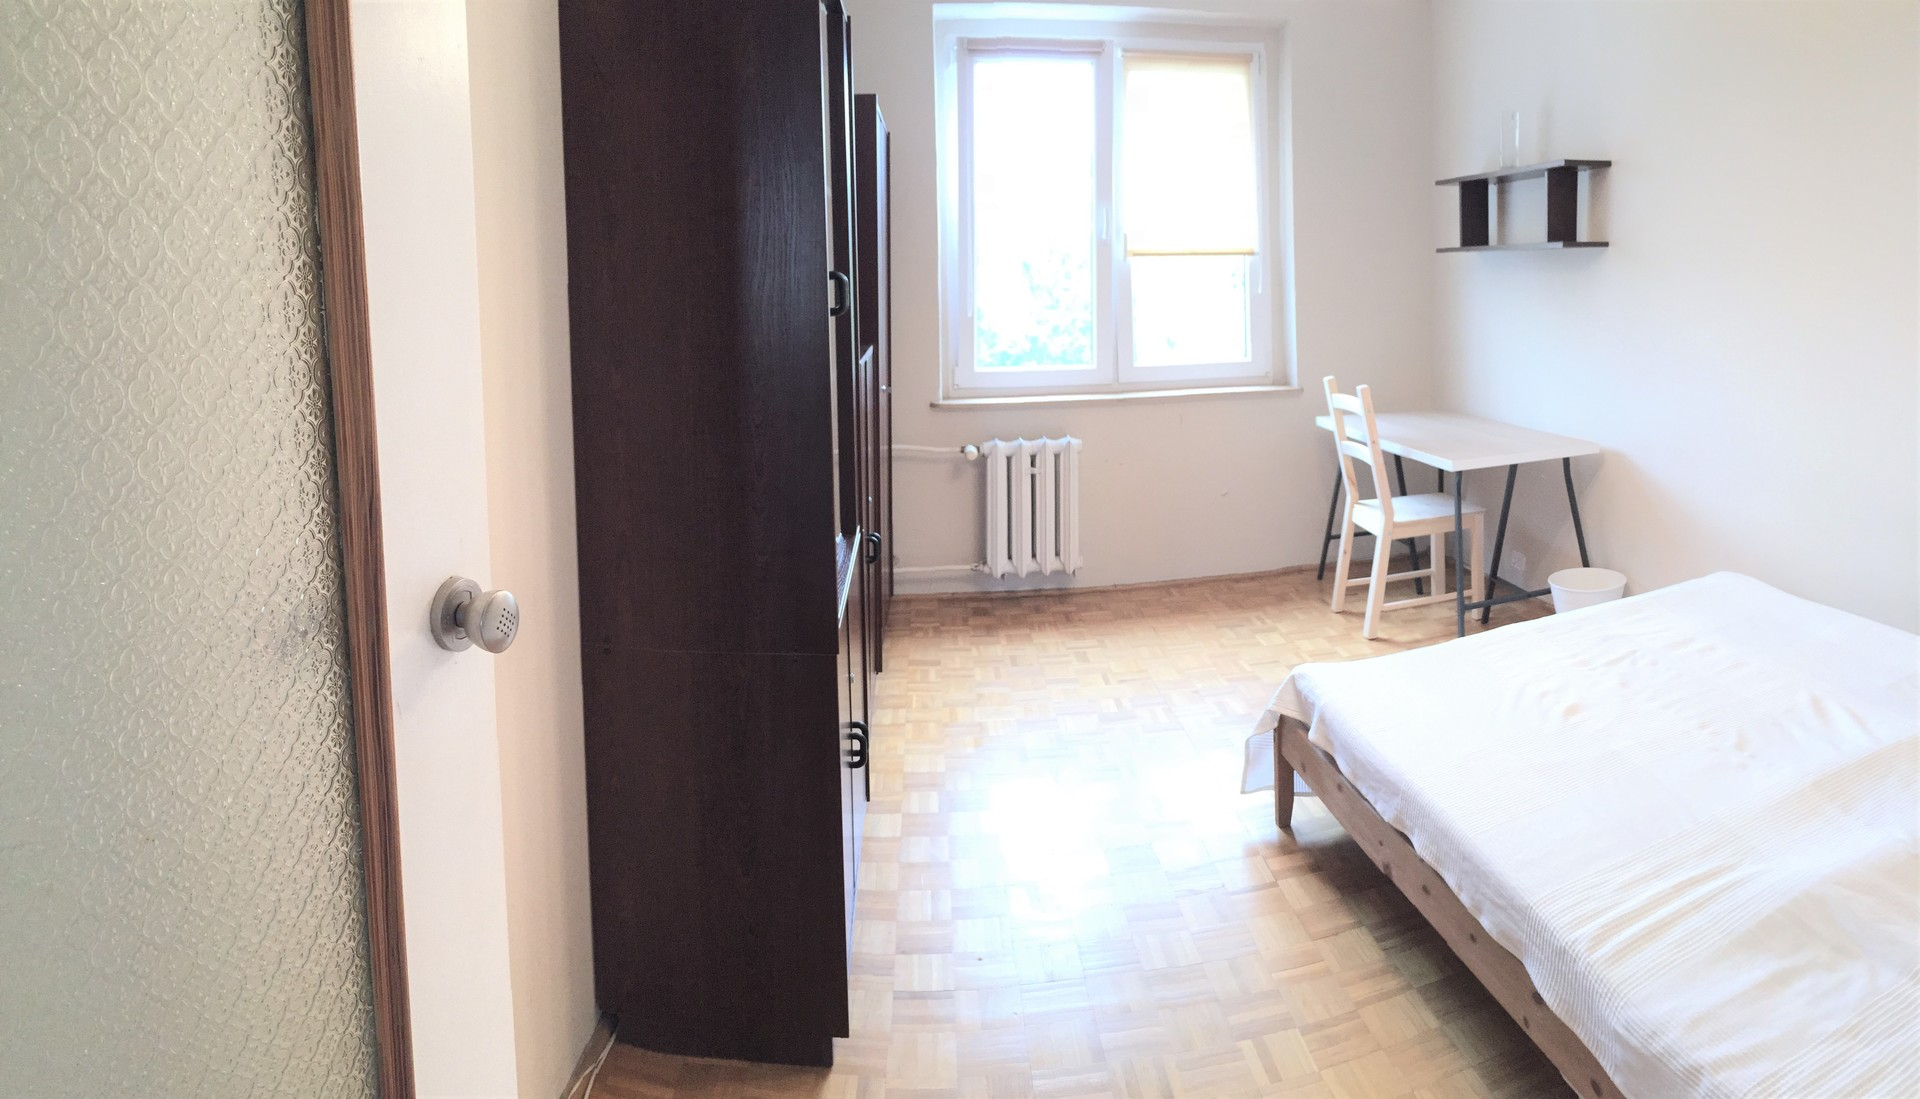 recently refurnished with ikea room 14m2 20min from city center